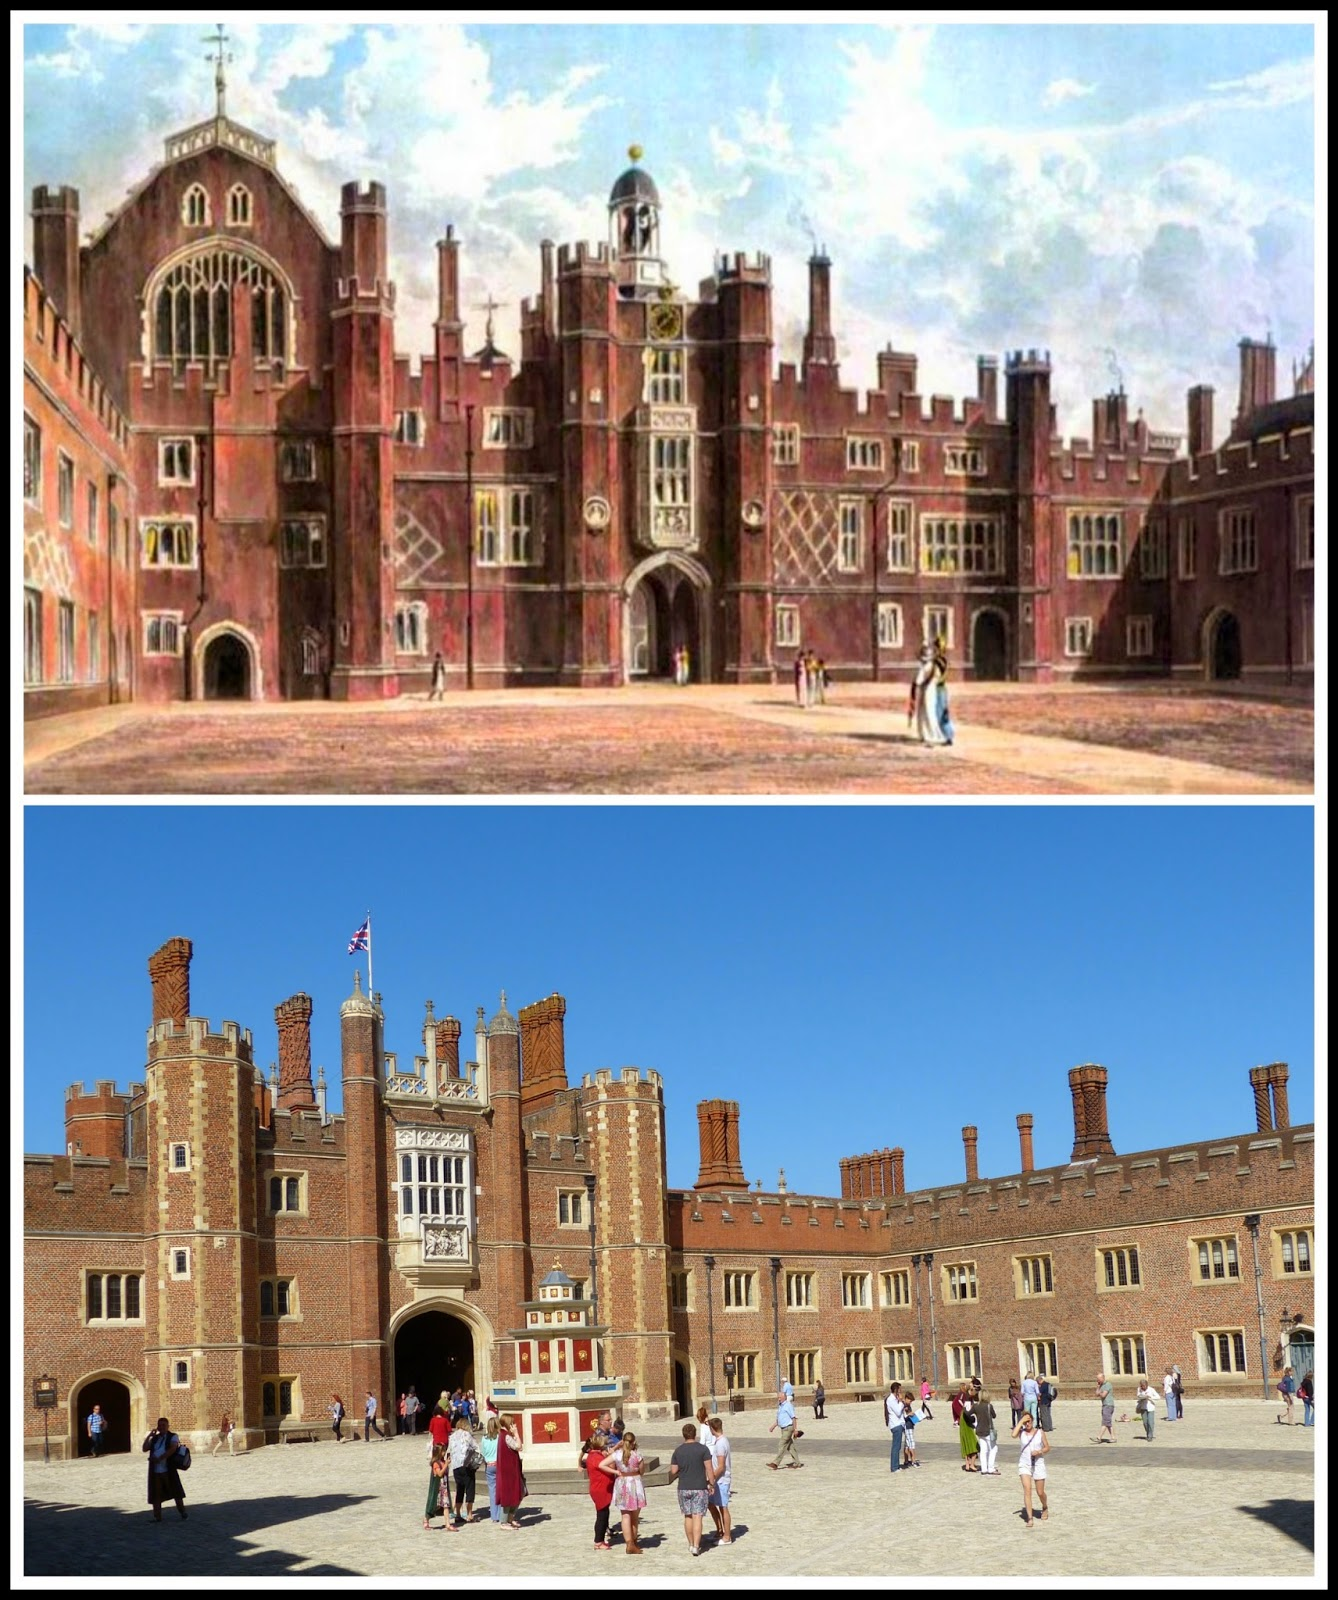 Top: Quadrangle, Hampton Court, from    The History of the Royal Residences by WH Pyne (1819)  Bottom: Hampton Court today © Andrew Knowle